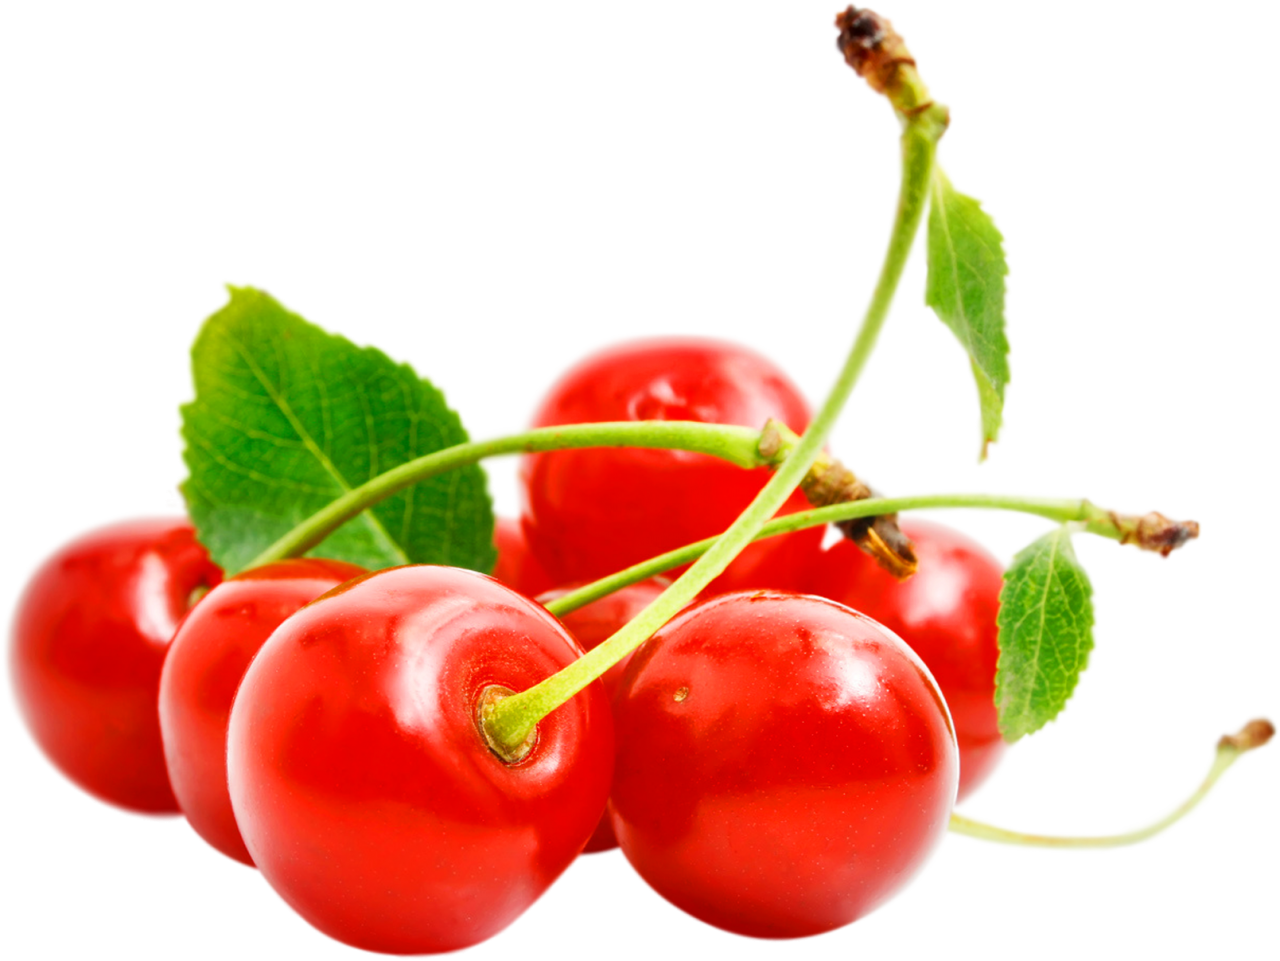 Cherrys PNG Image